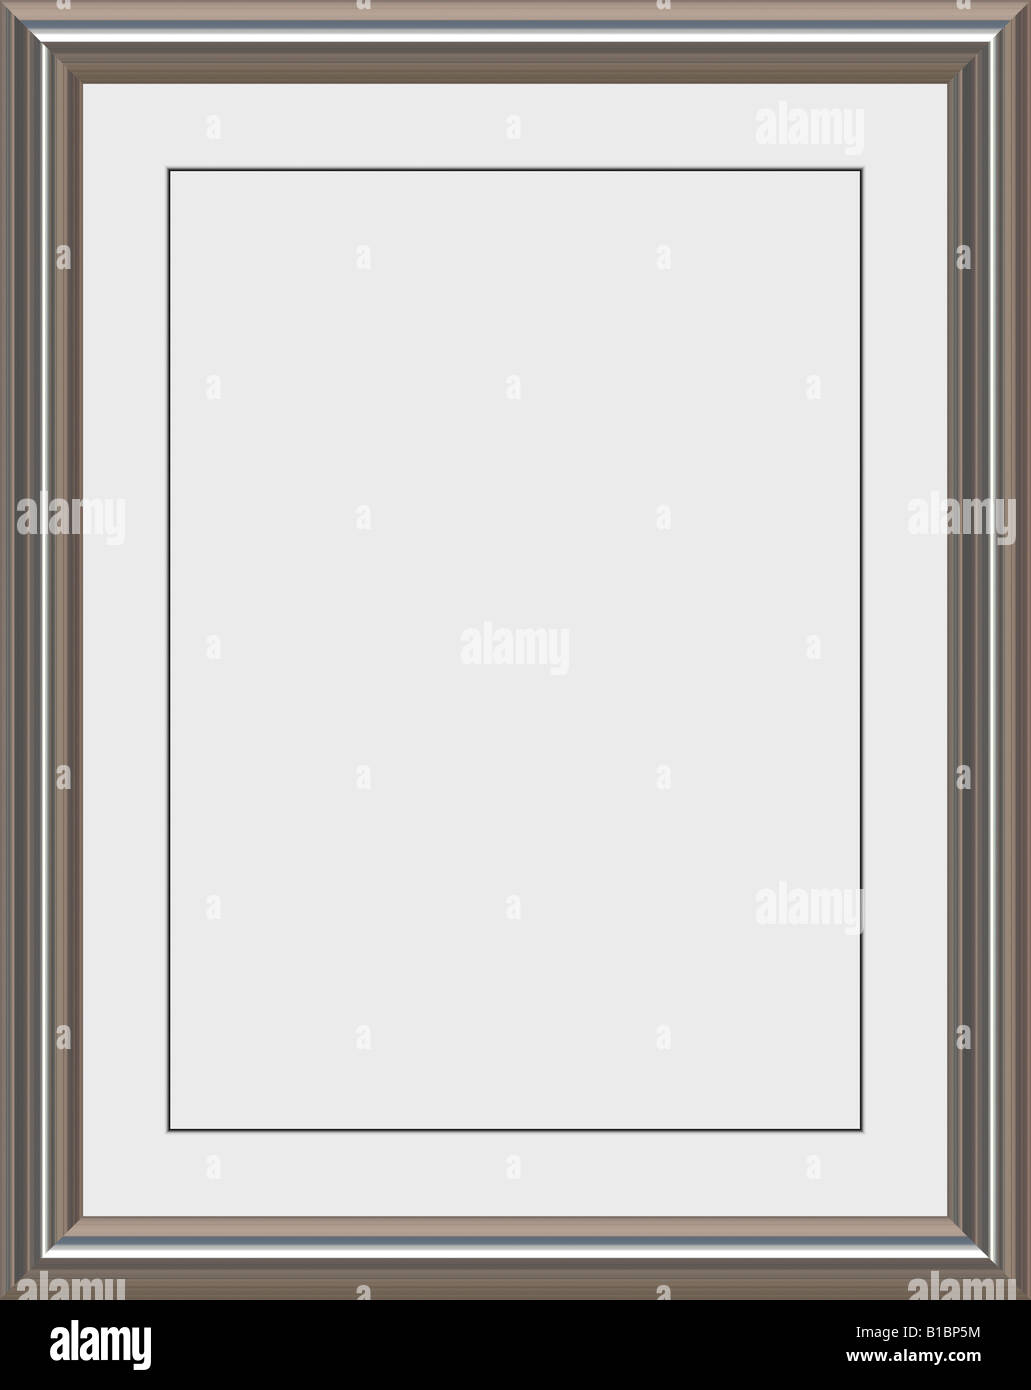 shiny metal frame with white matte for certificates awards or photos ...